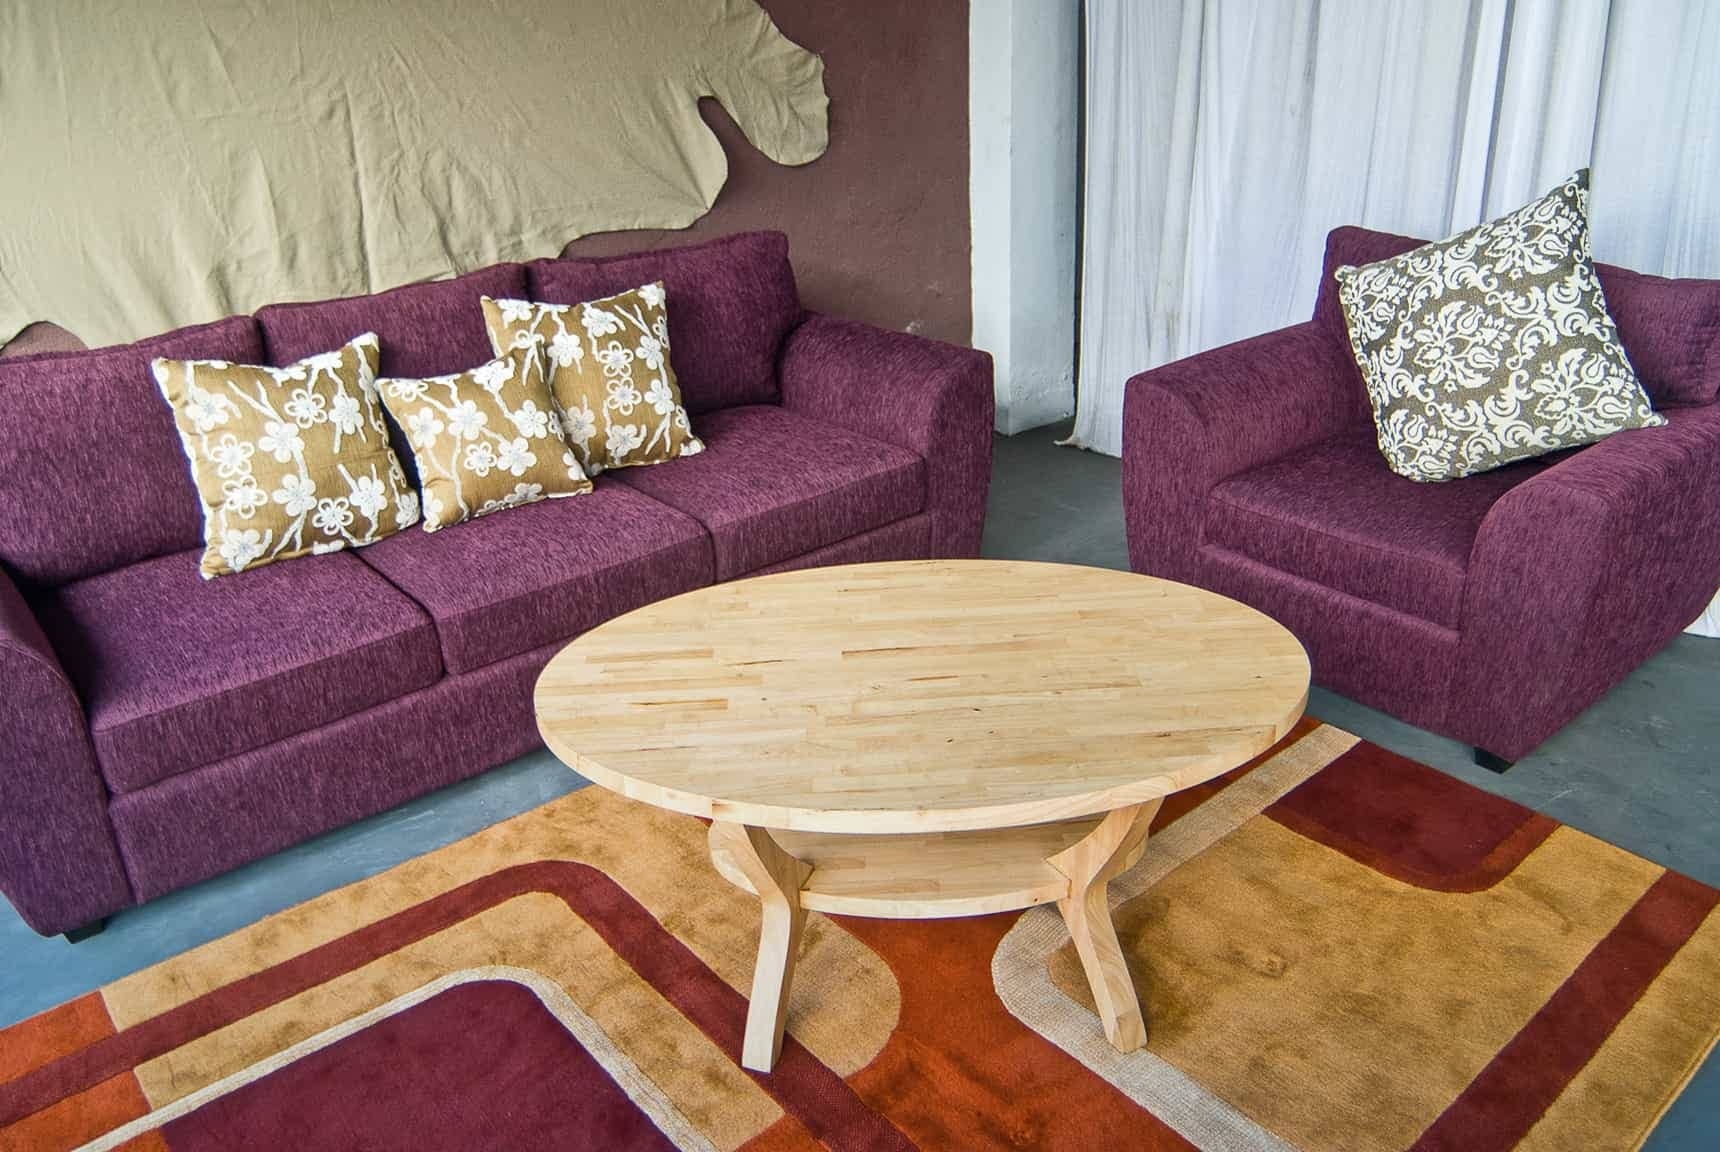 Professional photos of custom home furniture